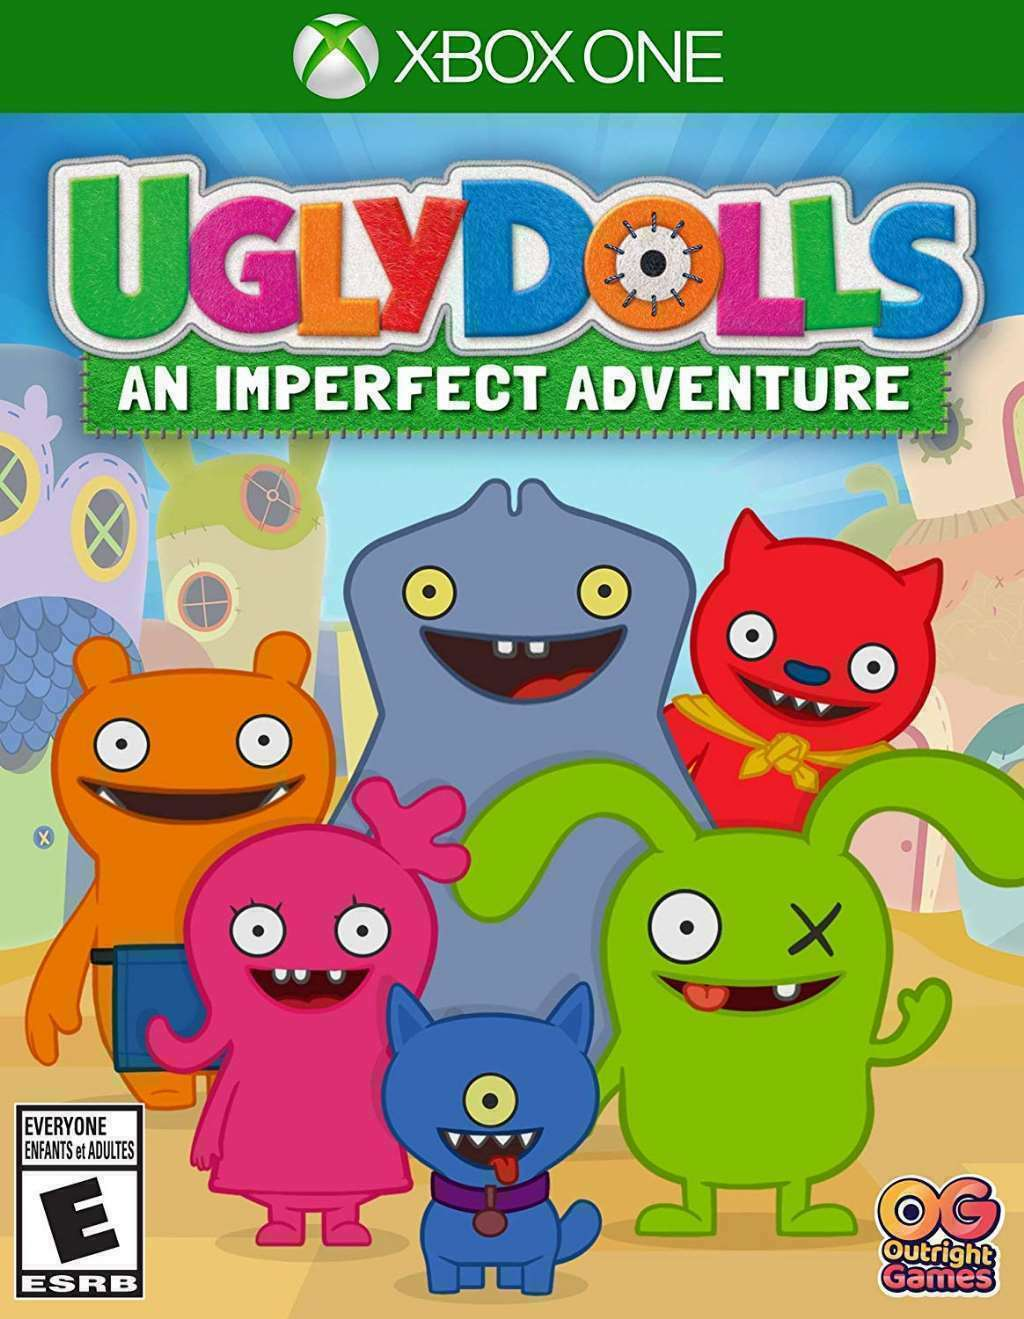 NEW SEALED Ugly Dolls: An Imperfect Adventure - Xbox One XB1 - Free Shipping